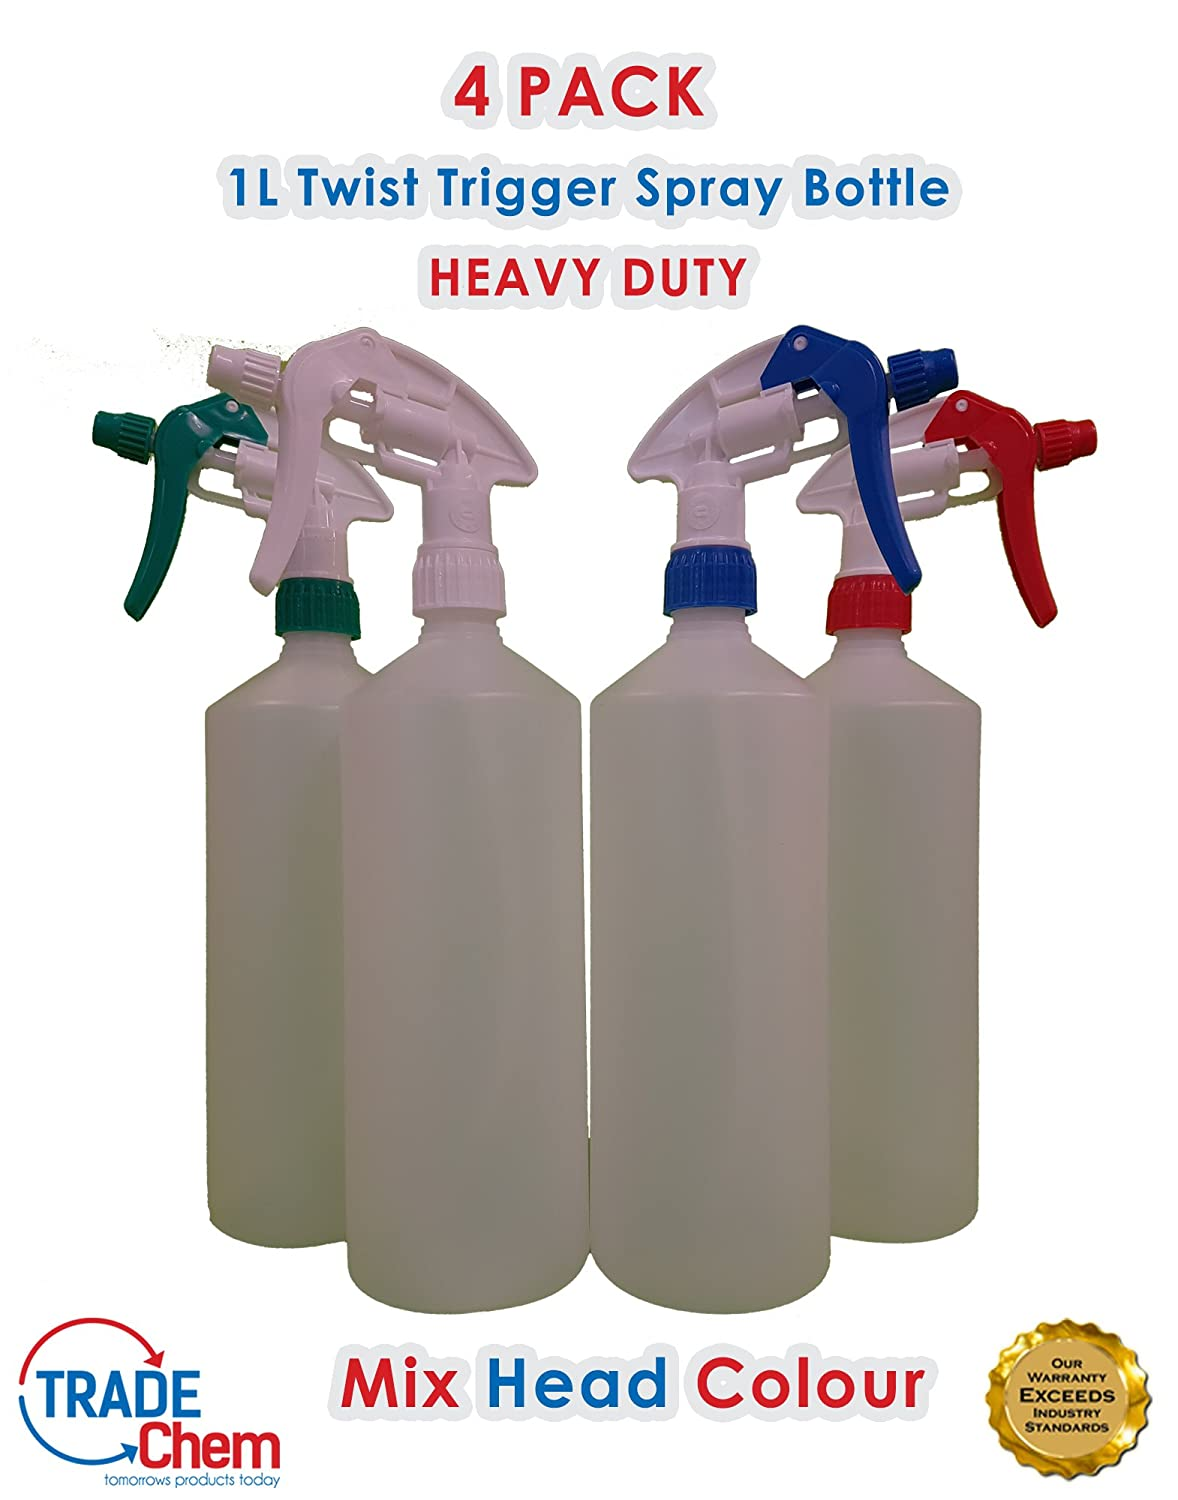 4 x Twist Type Trigger MIXED Spray Bottles 1L, Valeting, Household Cleaning Chemical Resistant Trade Chemicals